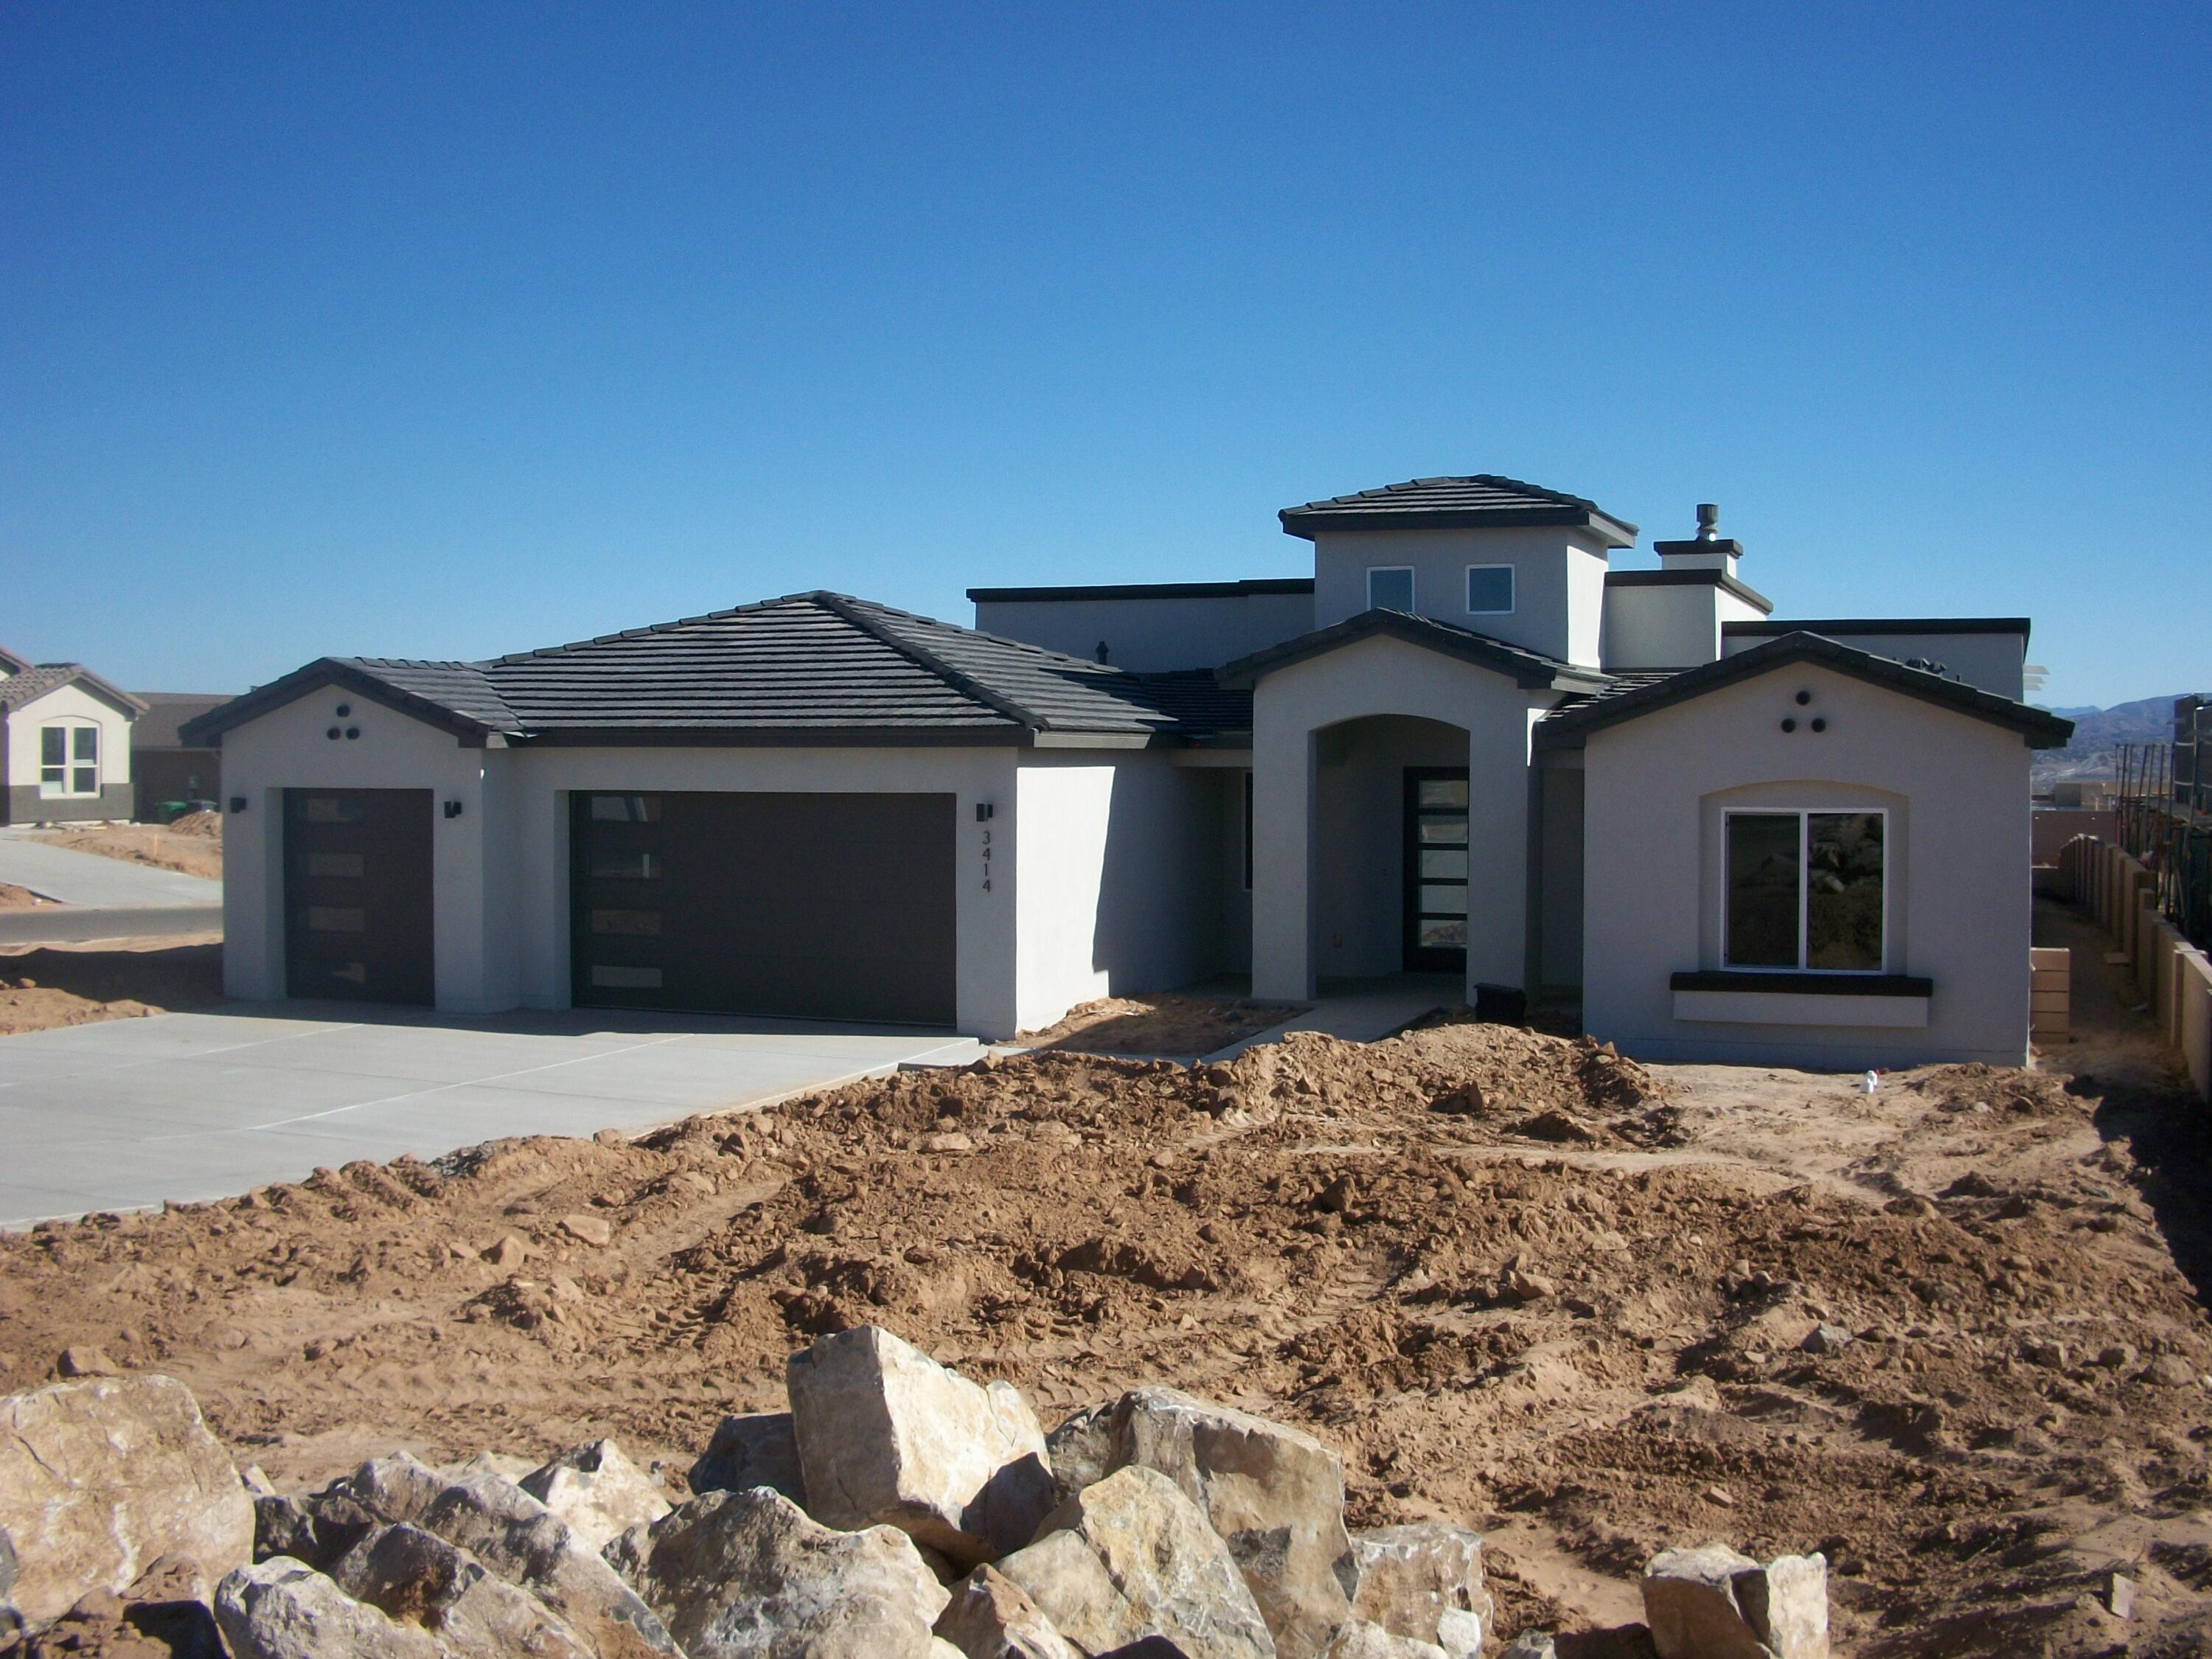 2021 Spring Parade of Homes ,  multiple award winner, Quality Builders bring another custom home to Vista Entrada. This 4 bedroom 3 bathroom 3 car garage home sits on a corner 1/2 acre lot. Views of the Sandia mountains from the back of the home. This home is under construction. Cabinets are being installed this week. 3 CM Frost Quartz will be installed on all counter tops including laundry room. 5 foot tall block wall will be installed with a gate for backyard access. Front yard will be landscaped with drip system. Int. and Ext door, Appliance, Cabinet info attached to listing. This is a tremendous value. Come see, then make this the next place you call home. Quality Builder ''A Higher Degree of Excellence''.